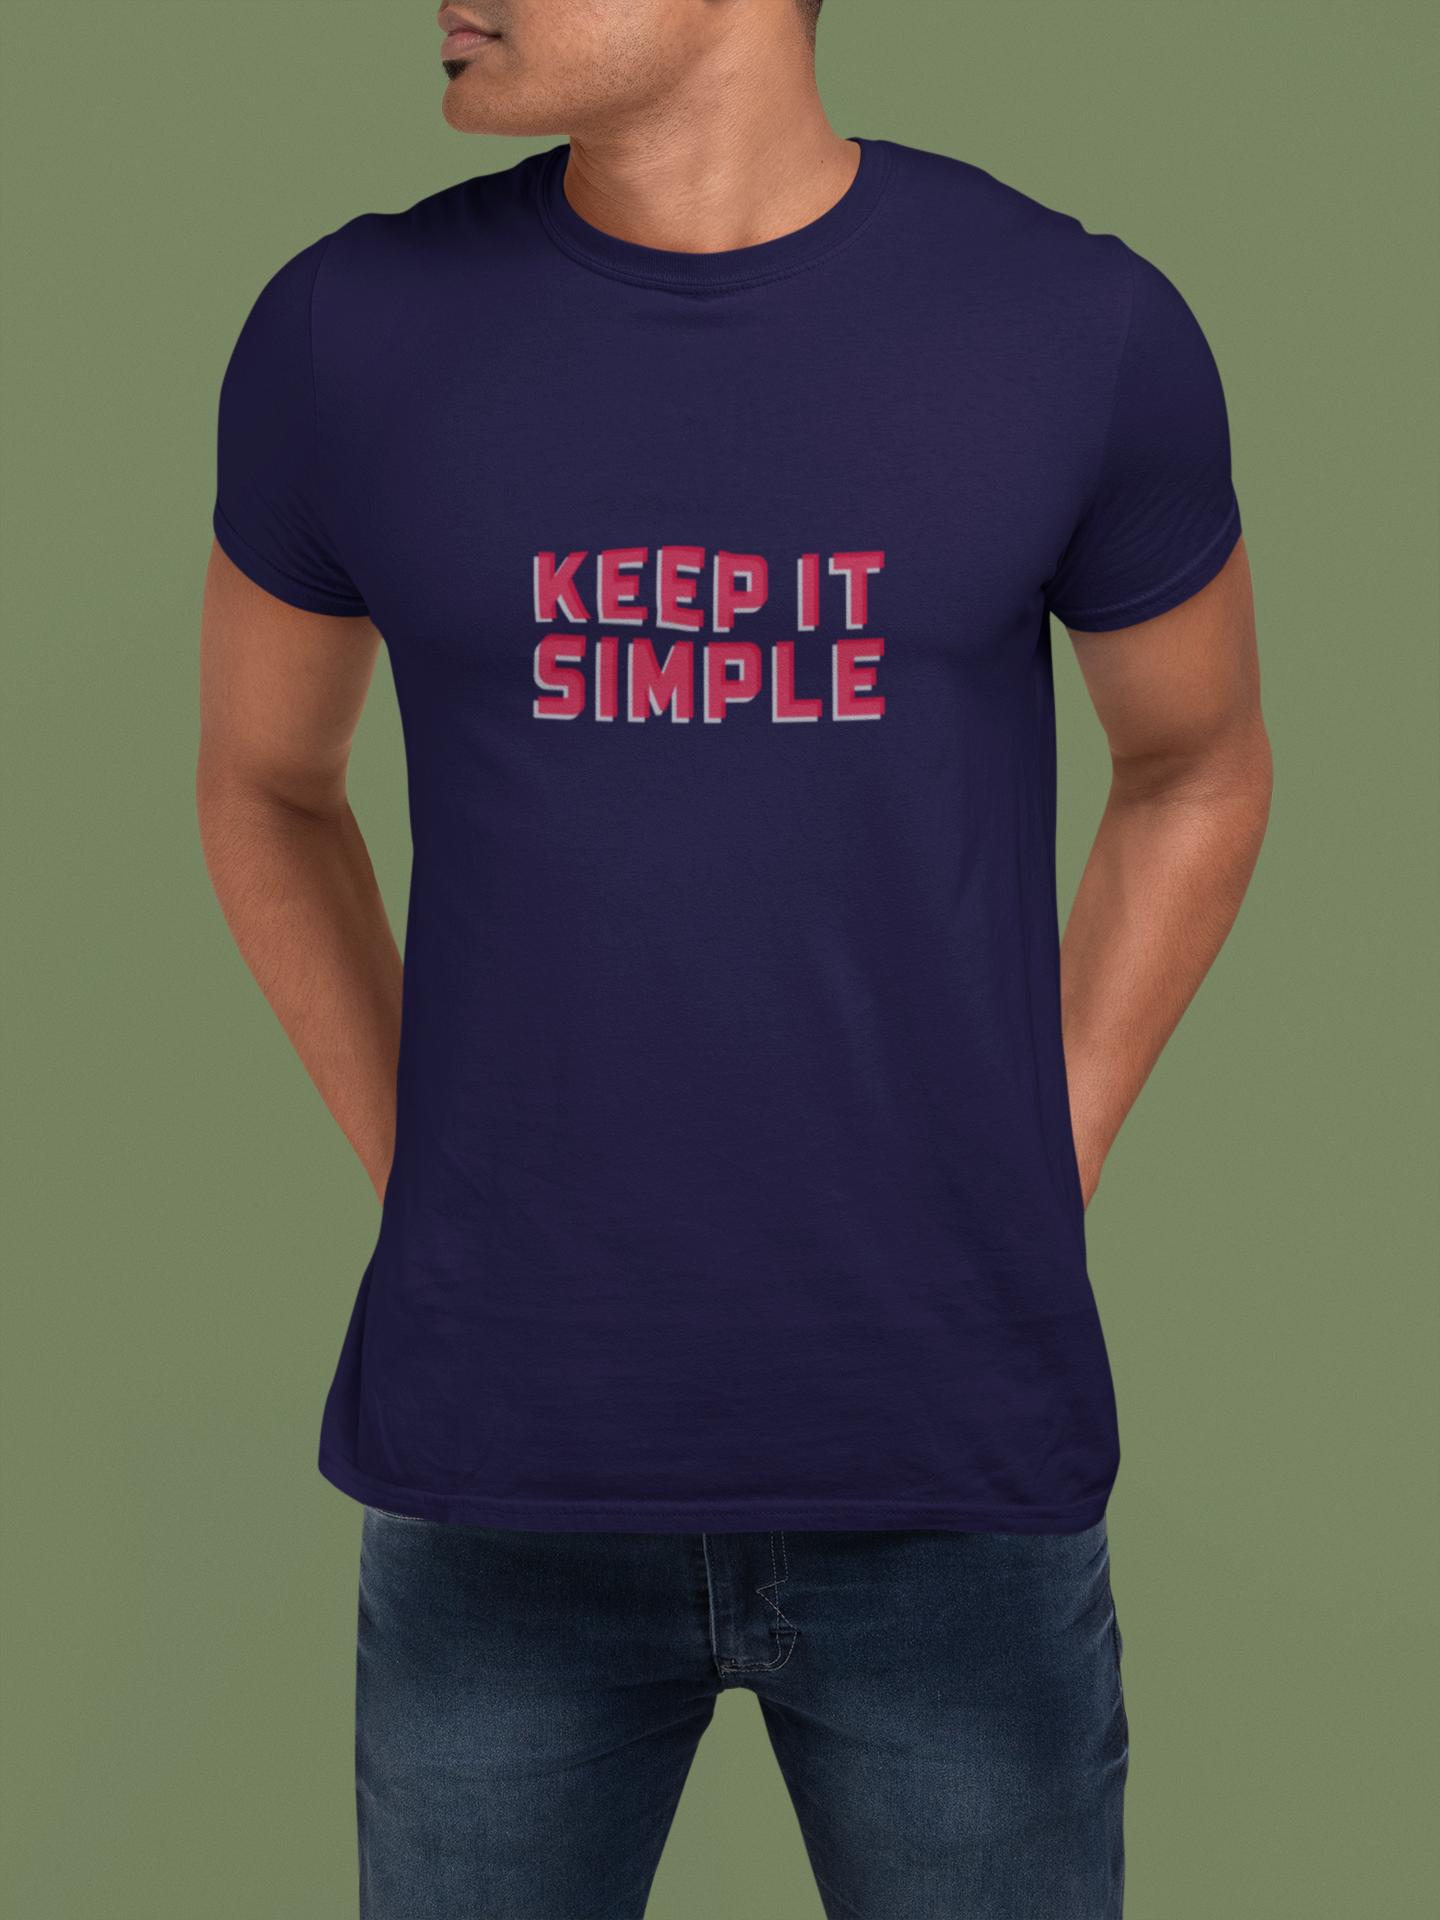 KEEP IT SIMPLE -Graphic T-shirt